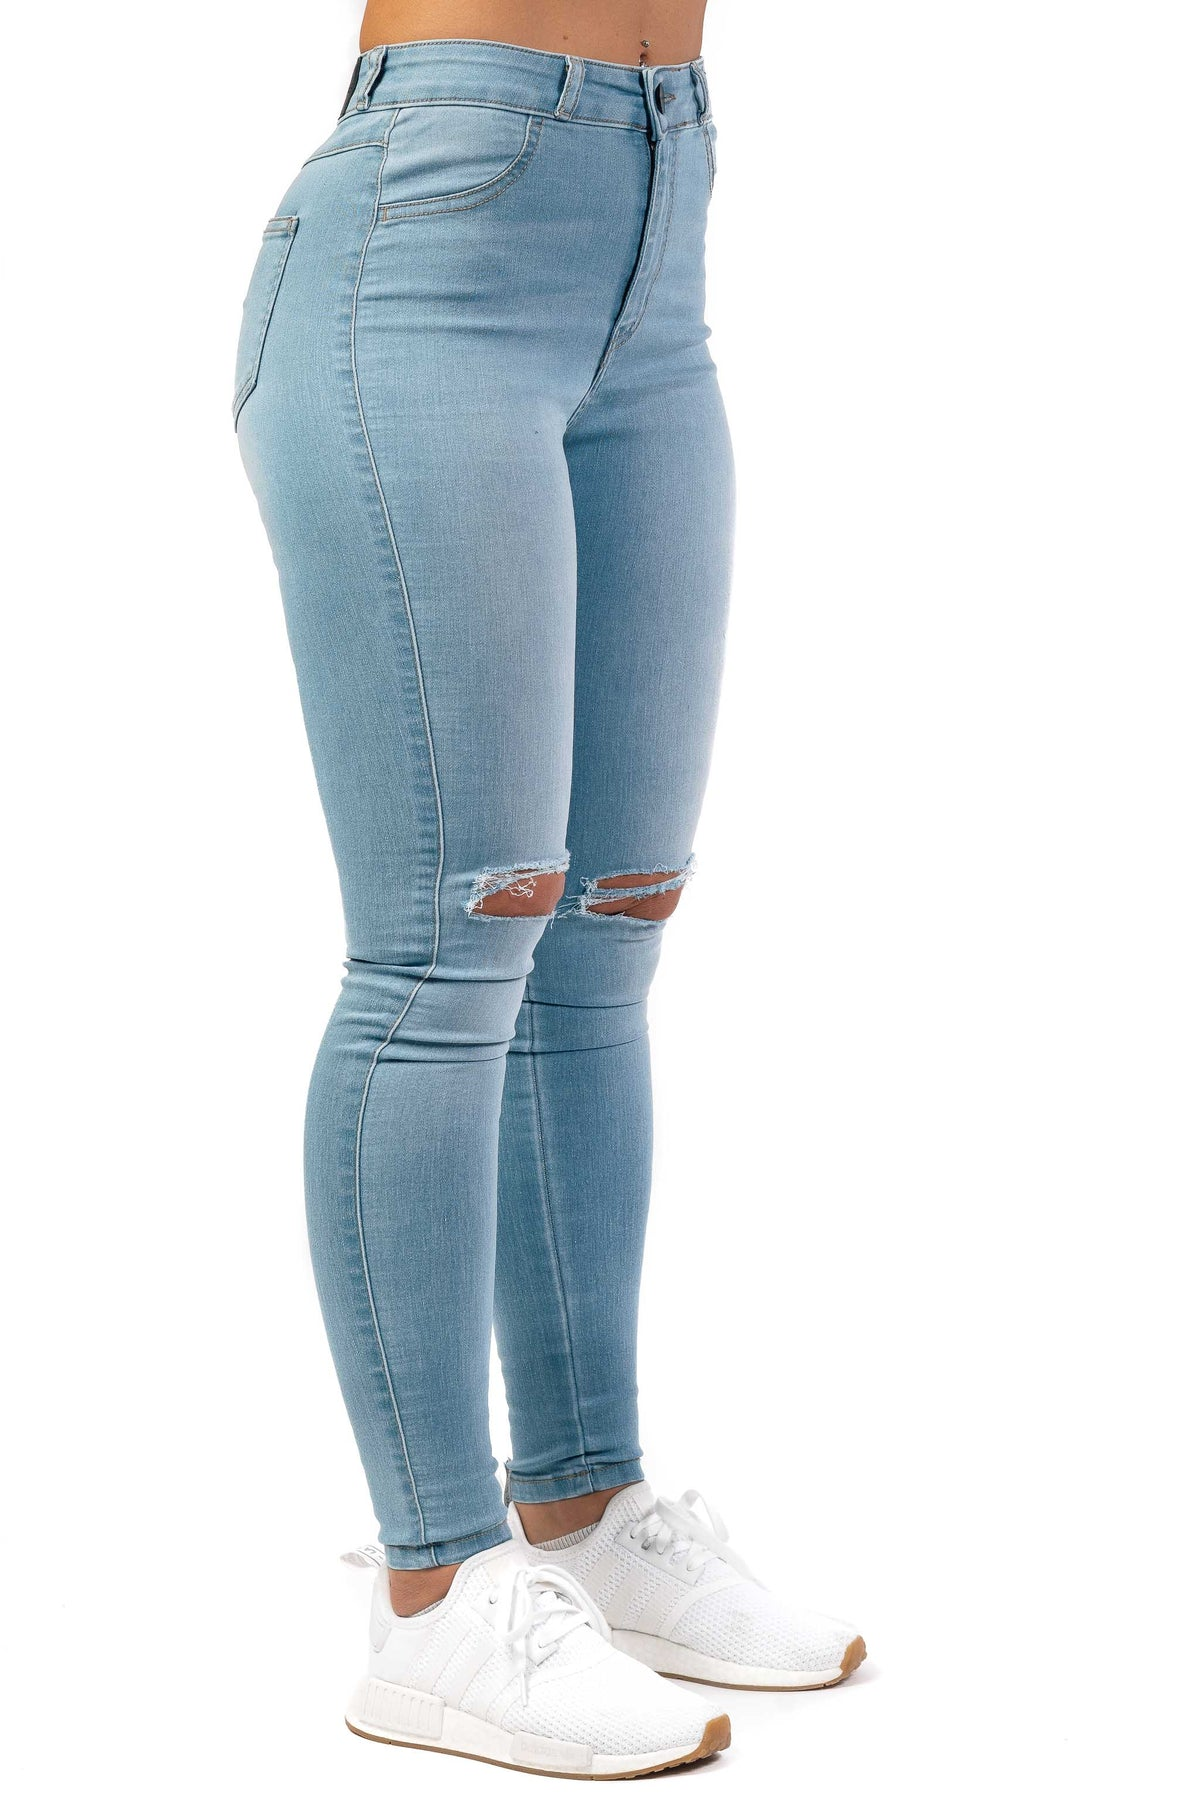 Womens Traditional Ripped High Waisted Fitjeans - Vintage Blue